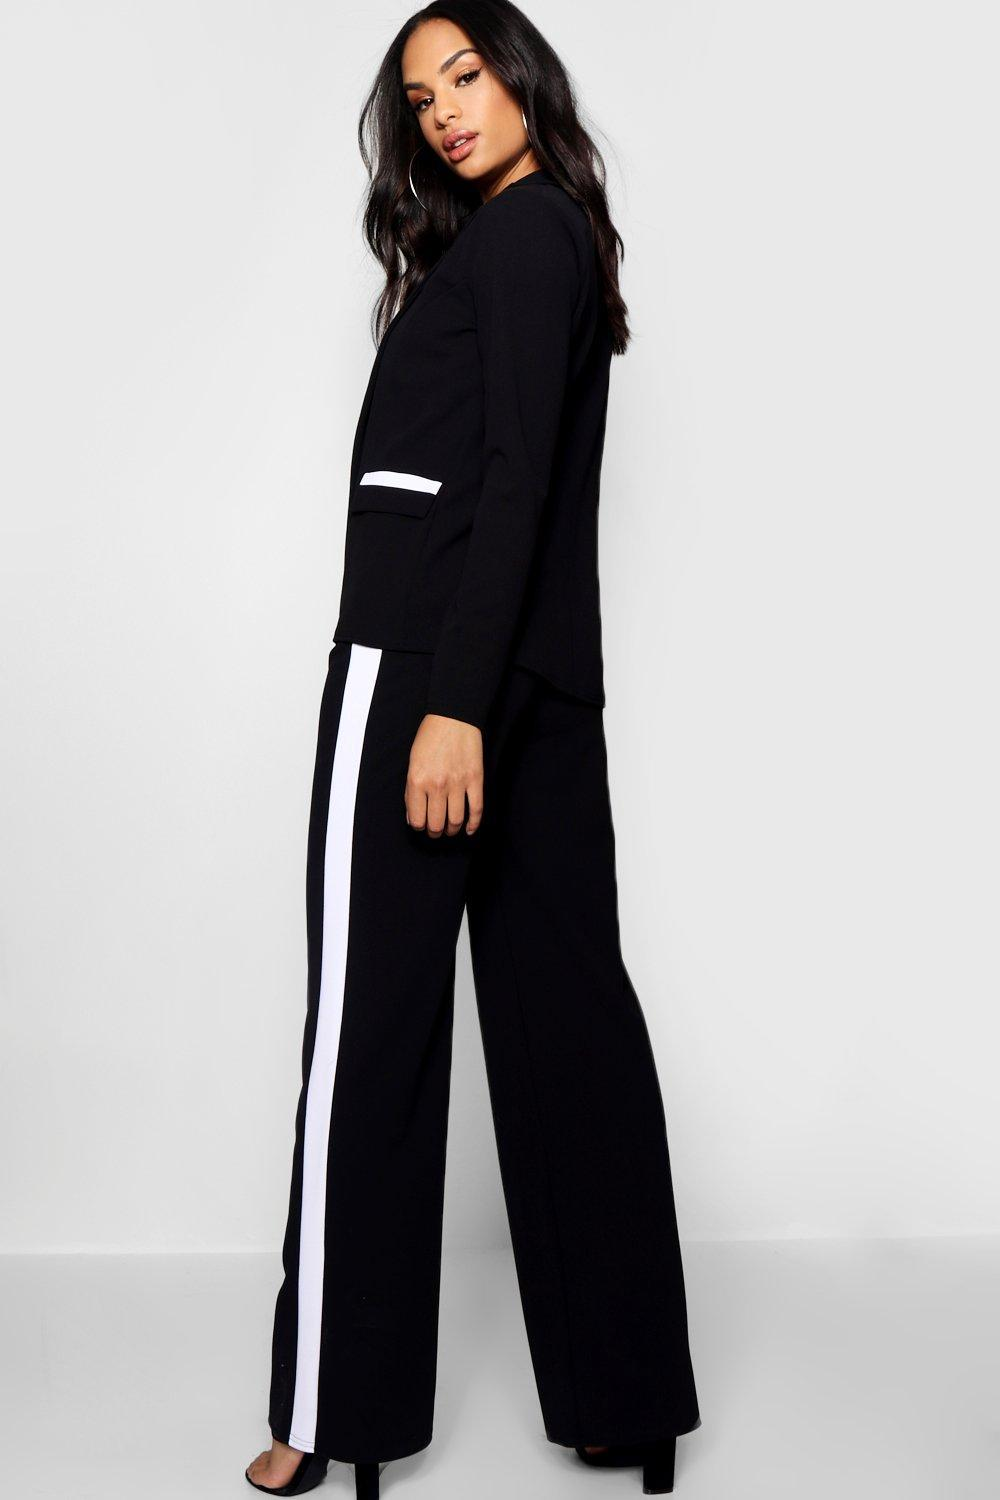 Boohoo Contrast Piping Detail Blazer in Black